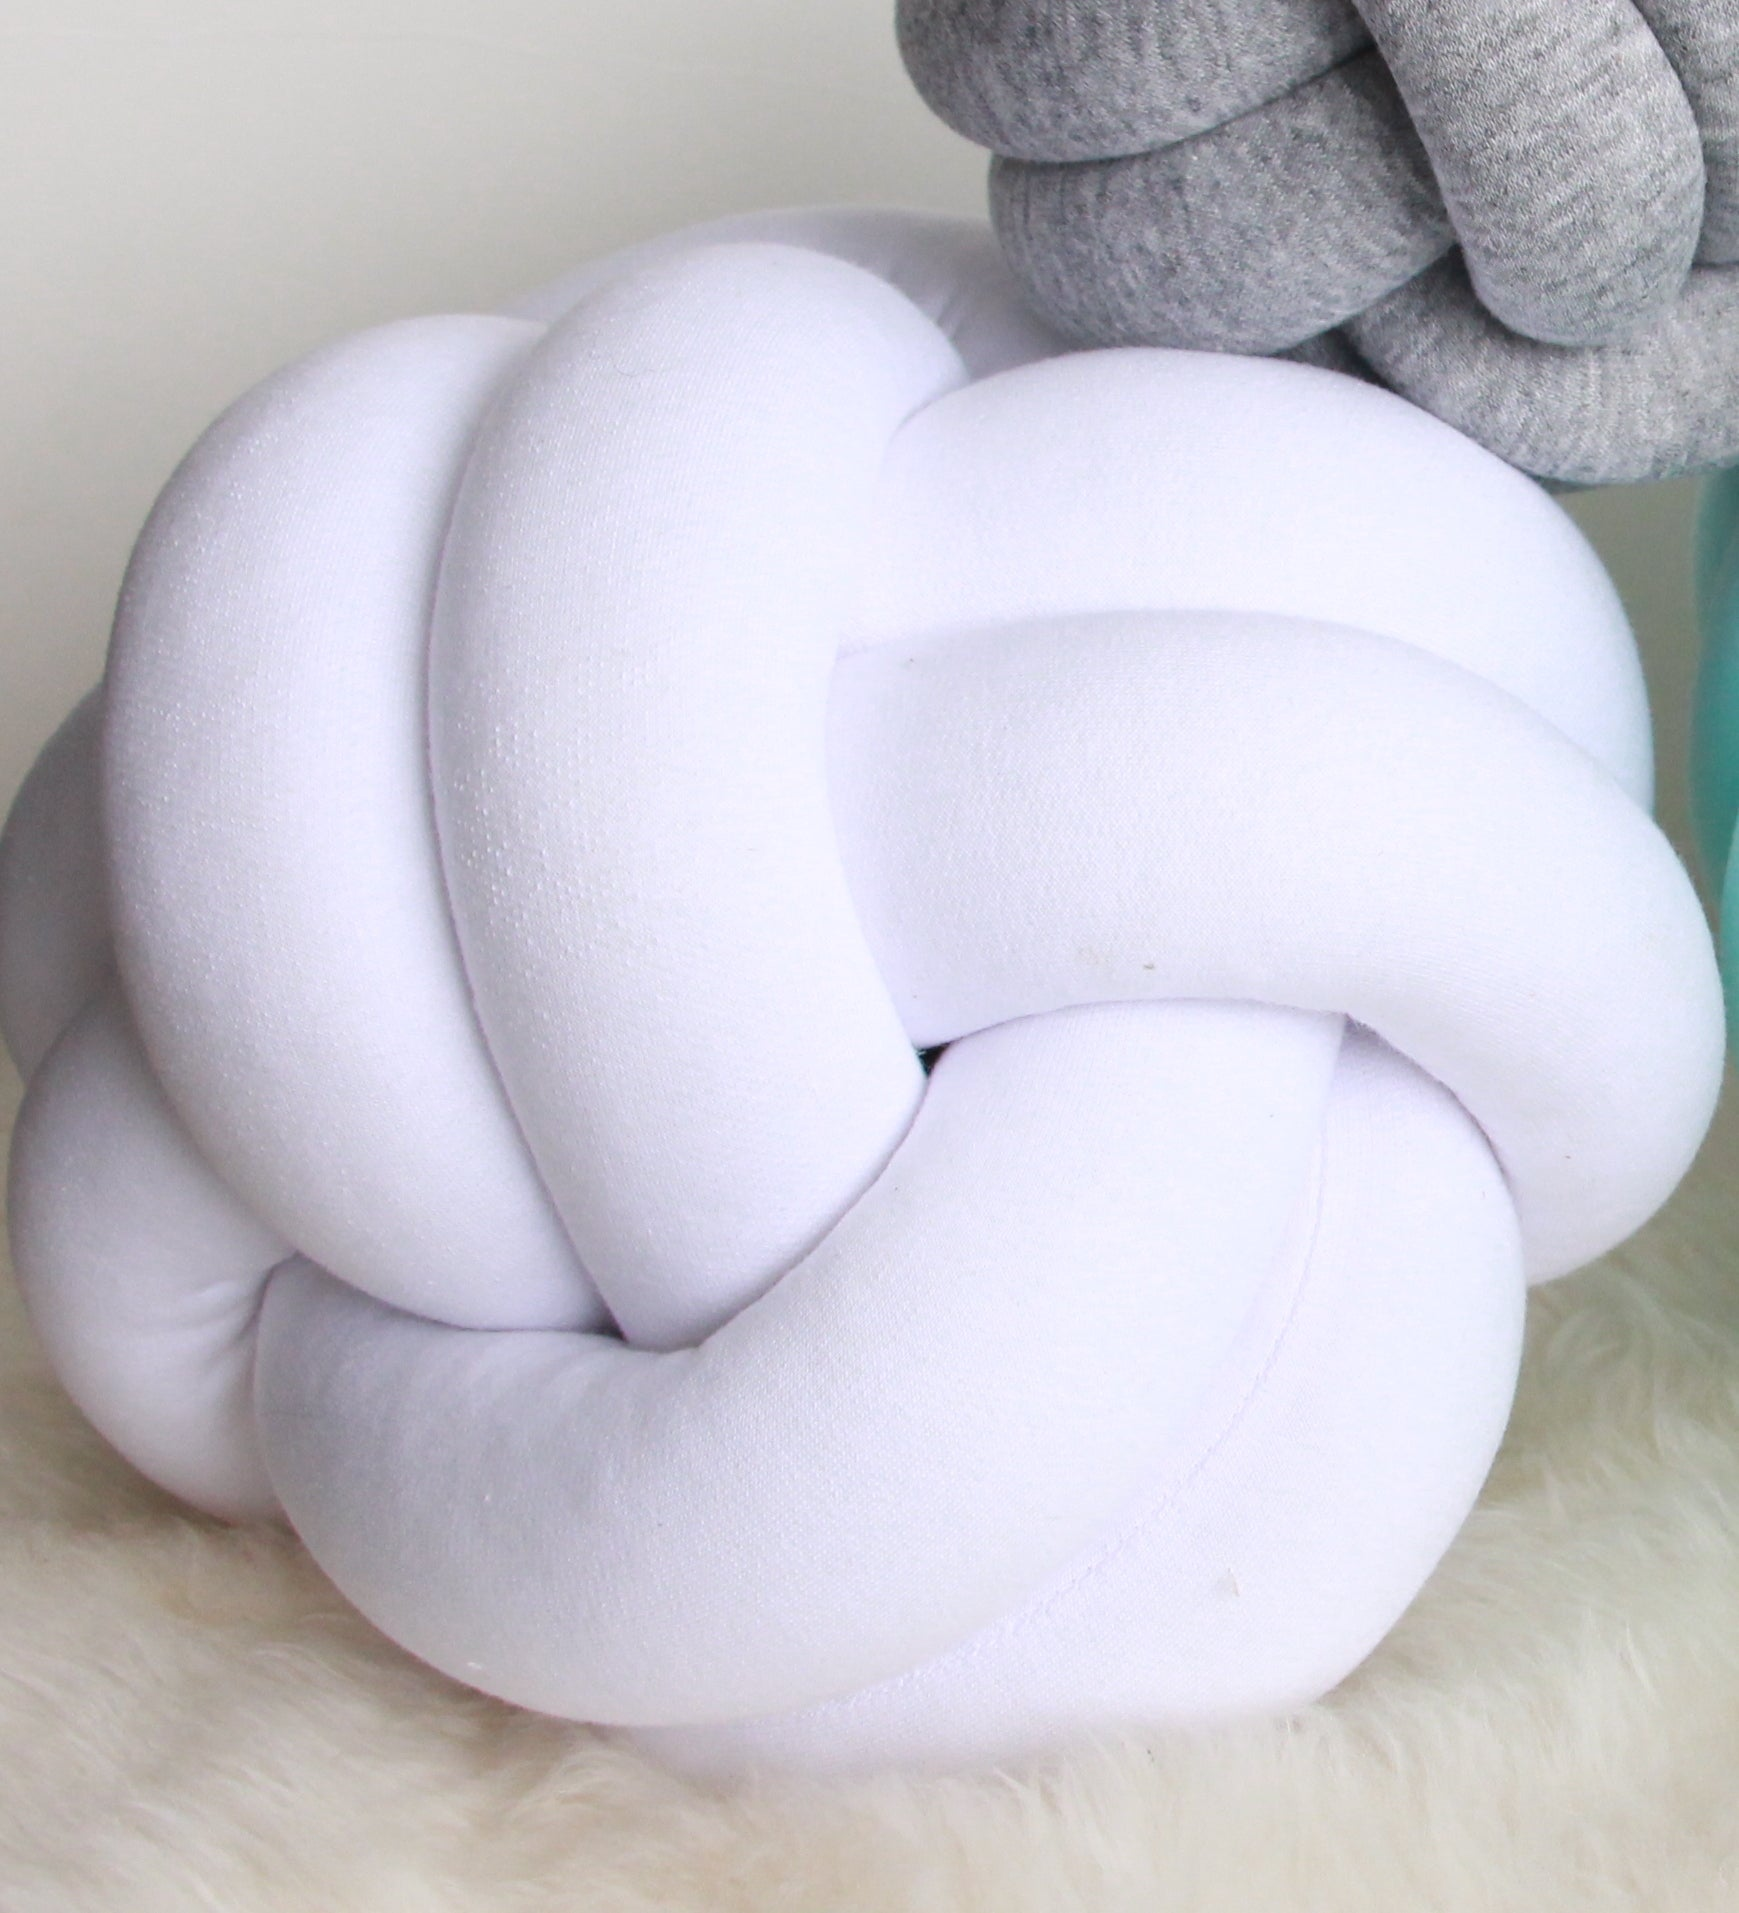 Medium Sphere Knot Pillow - See more Knot Pillows & Cushions at JujuAndJake.com